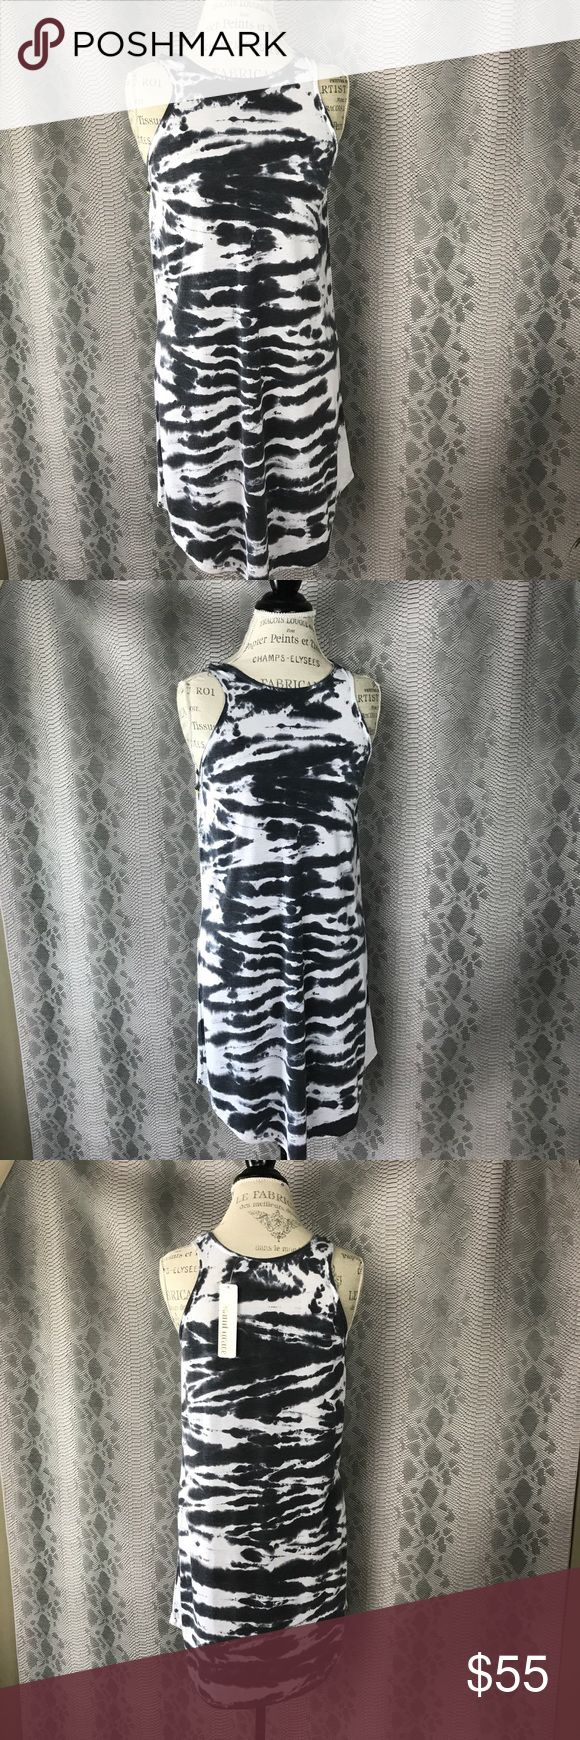 Saint Grace tie dye tunic, cover up Boutique Saint Grace tunic, cover up, top, dress, blackcaps & white tie dye, comfy feel   ||  Boutique  ||Bundle for a discount   ||  5 star ratings  ||  Fast shipper ||  100% authentic             N OTRADES  Tags: t shirt, tunic, tshirt dress, coverup, bathing suit cover up, tank dress saint grace Swim Coverups